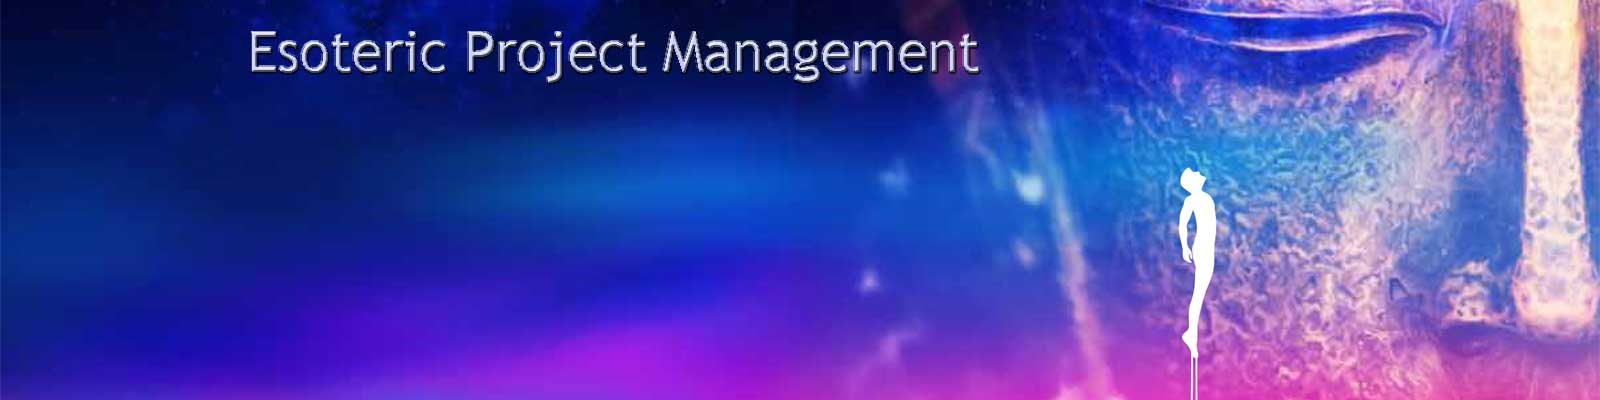 Esoteric Project Management approach by Stutisheel